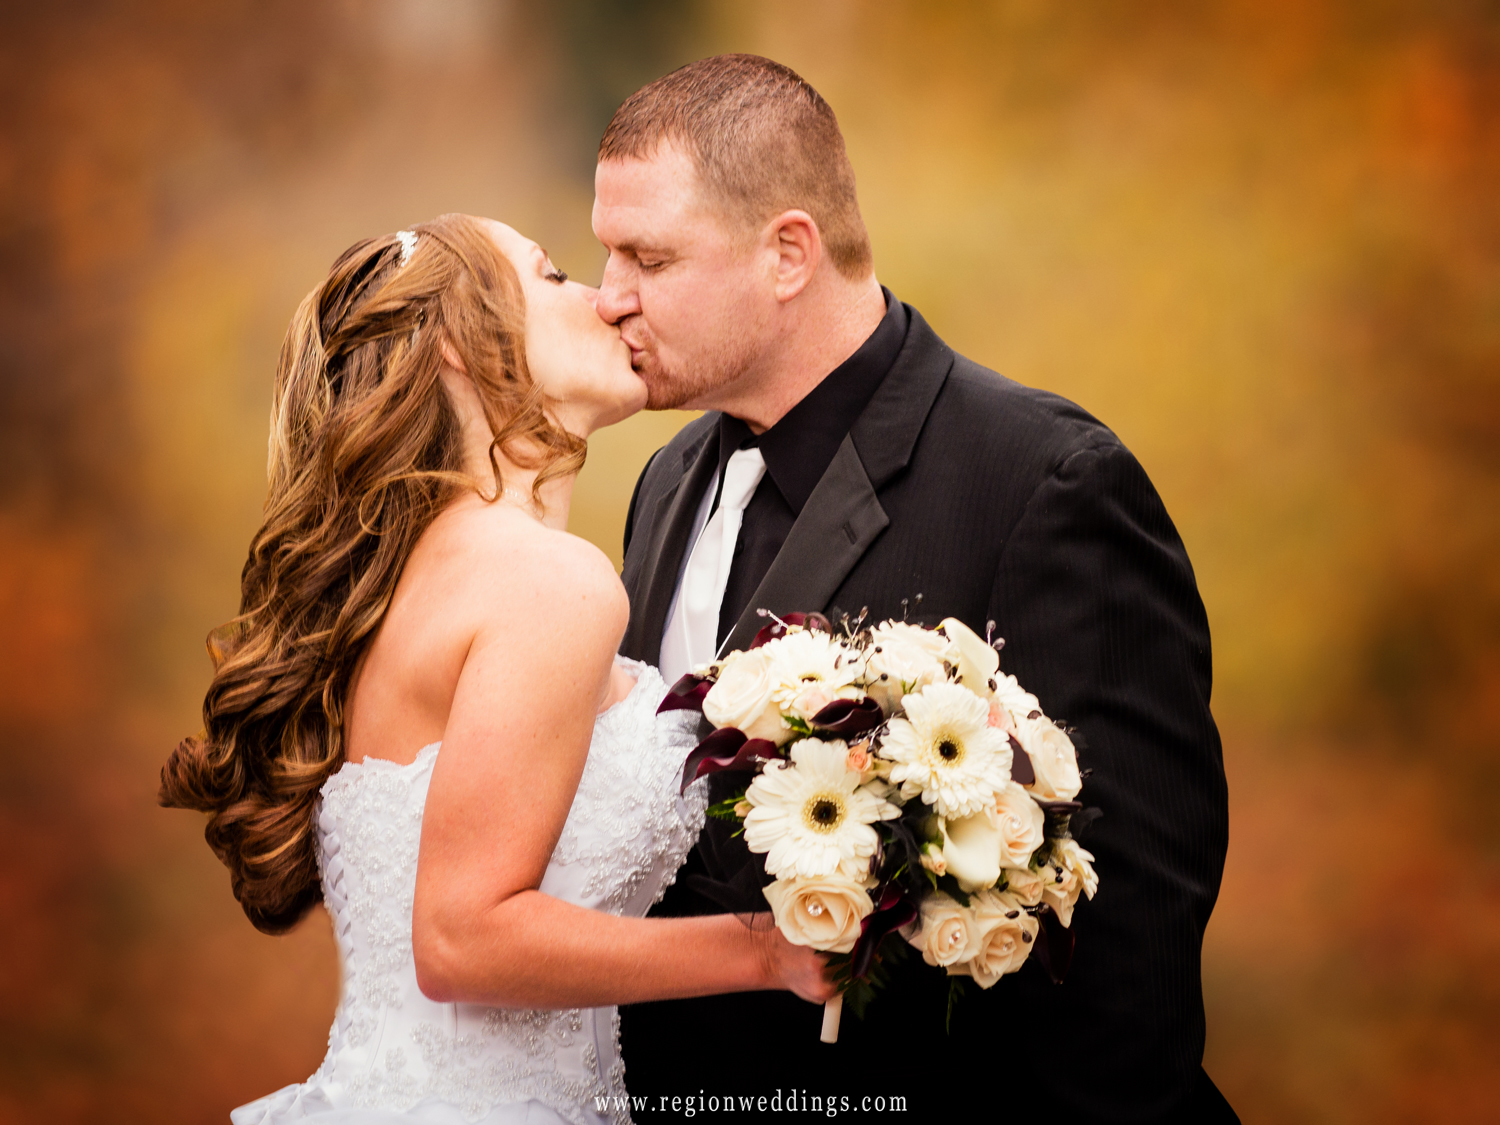 The bride and groom share a kiss amidst the Fall color of the apple fields at County Line Orchard.